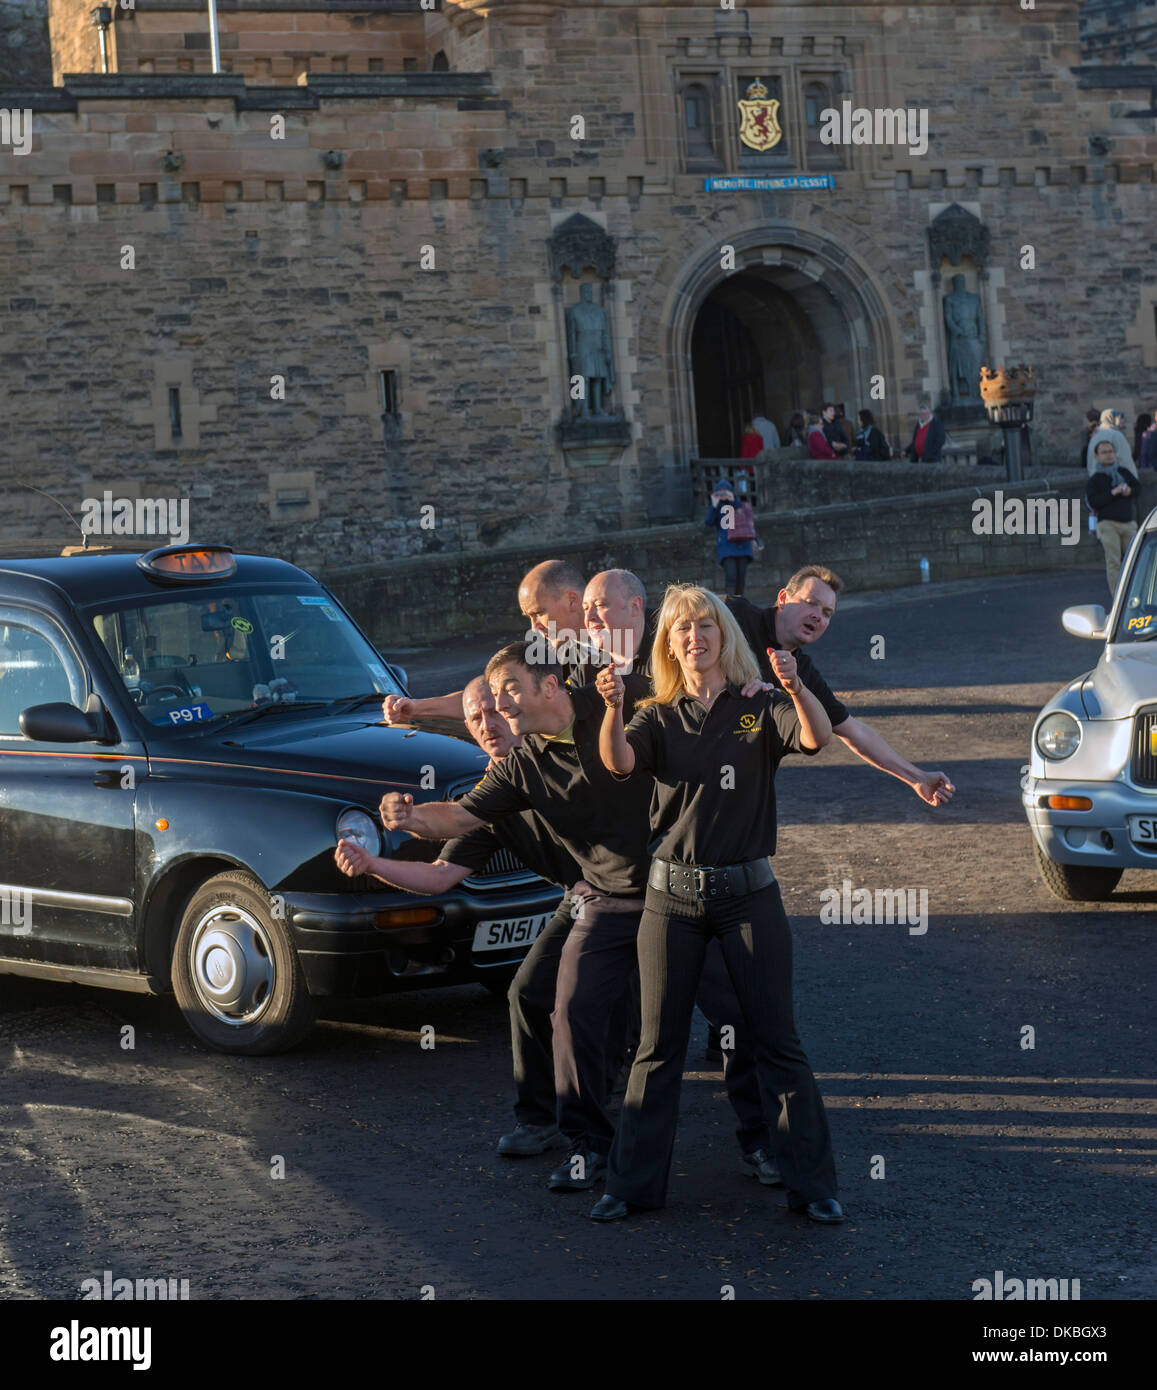 Cabbies from the Central Taxi company in Edinburgh, Scotland, dance for a company tv advertisement in front of castle. Stock Photo